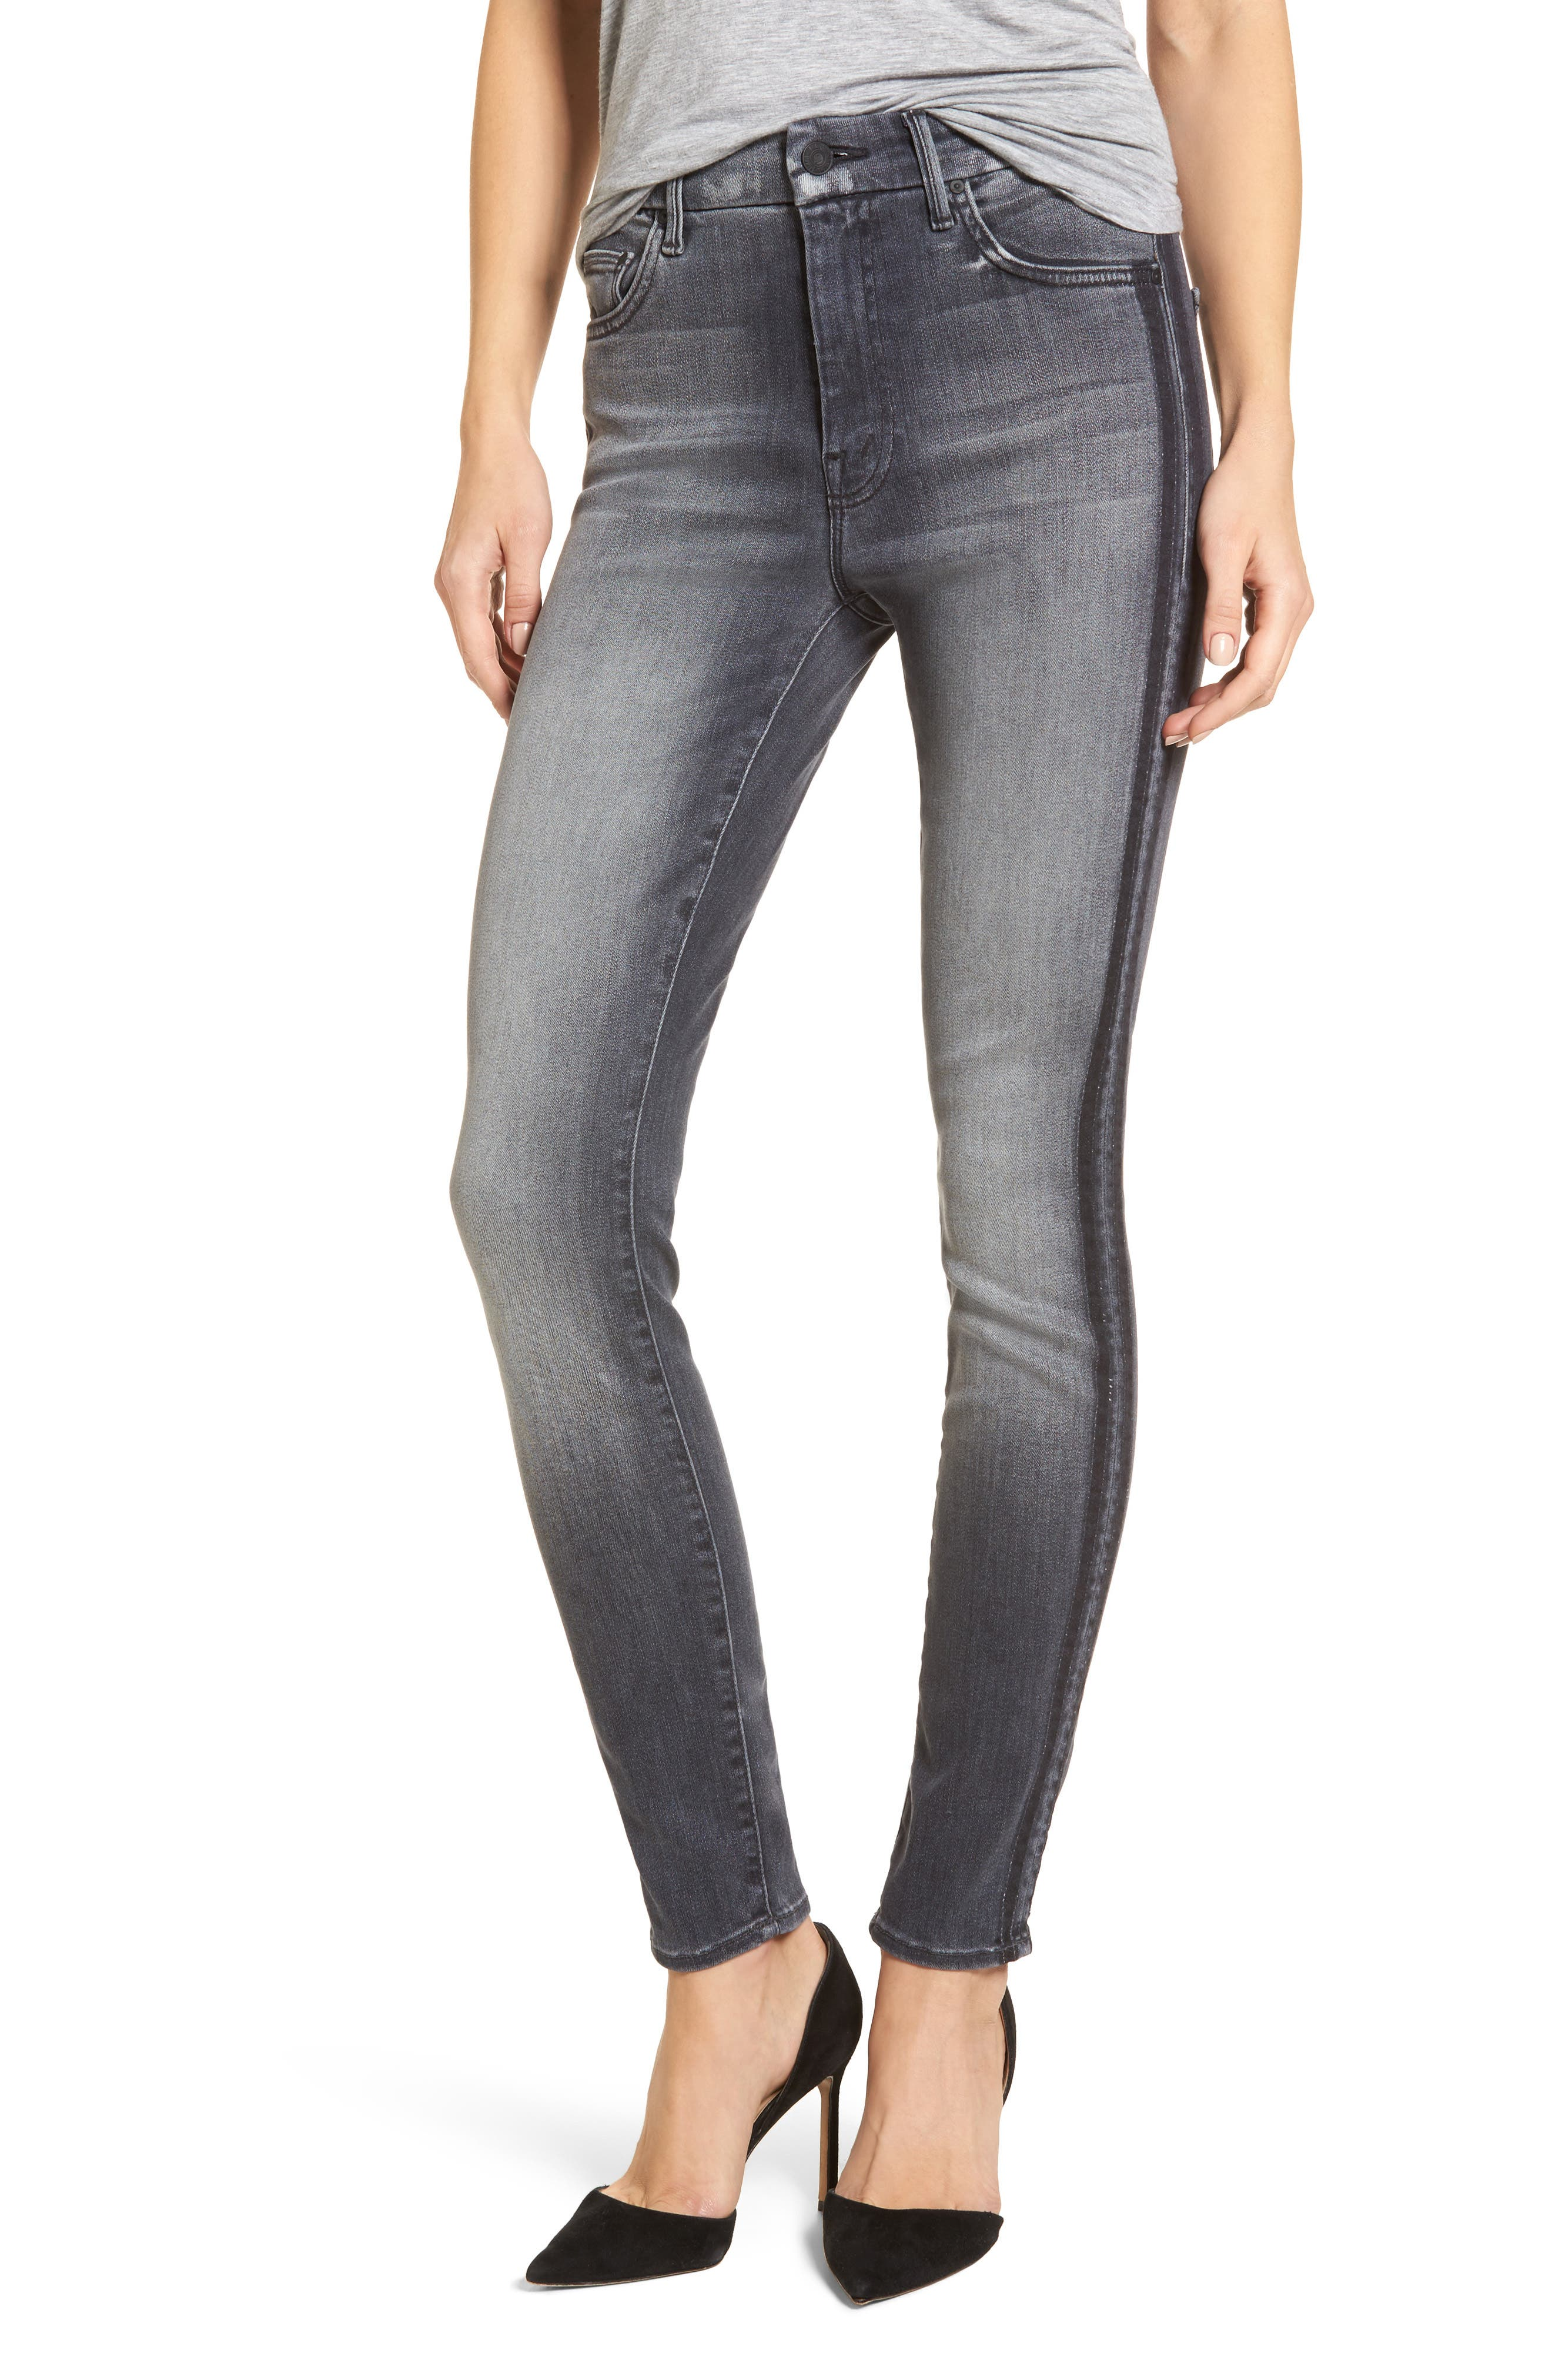 The Looker High Waist Skinny Jeans,                             Main thumbnail 1, color,                             Miss Moody Two Shoes Racer